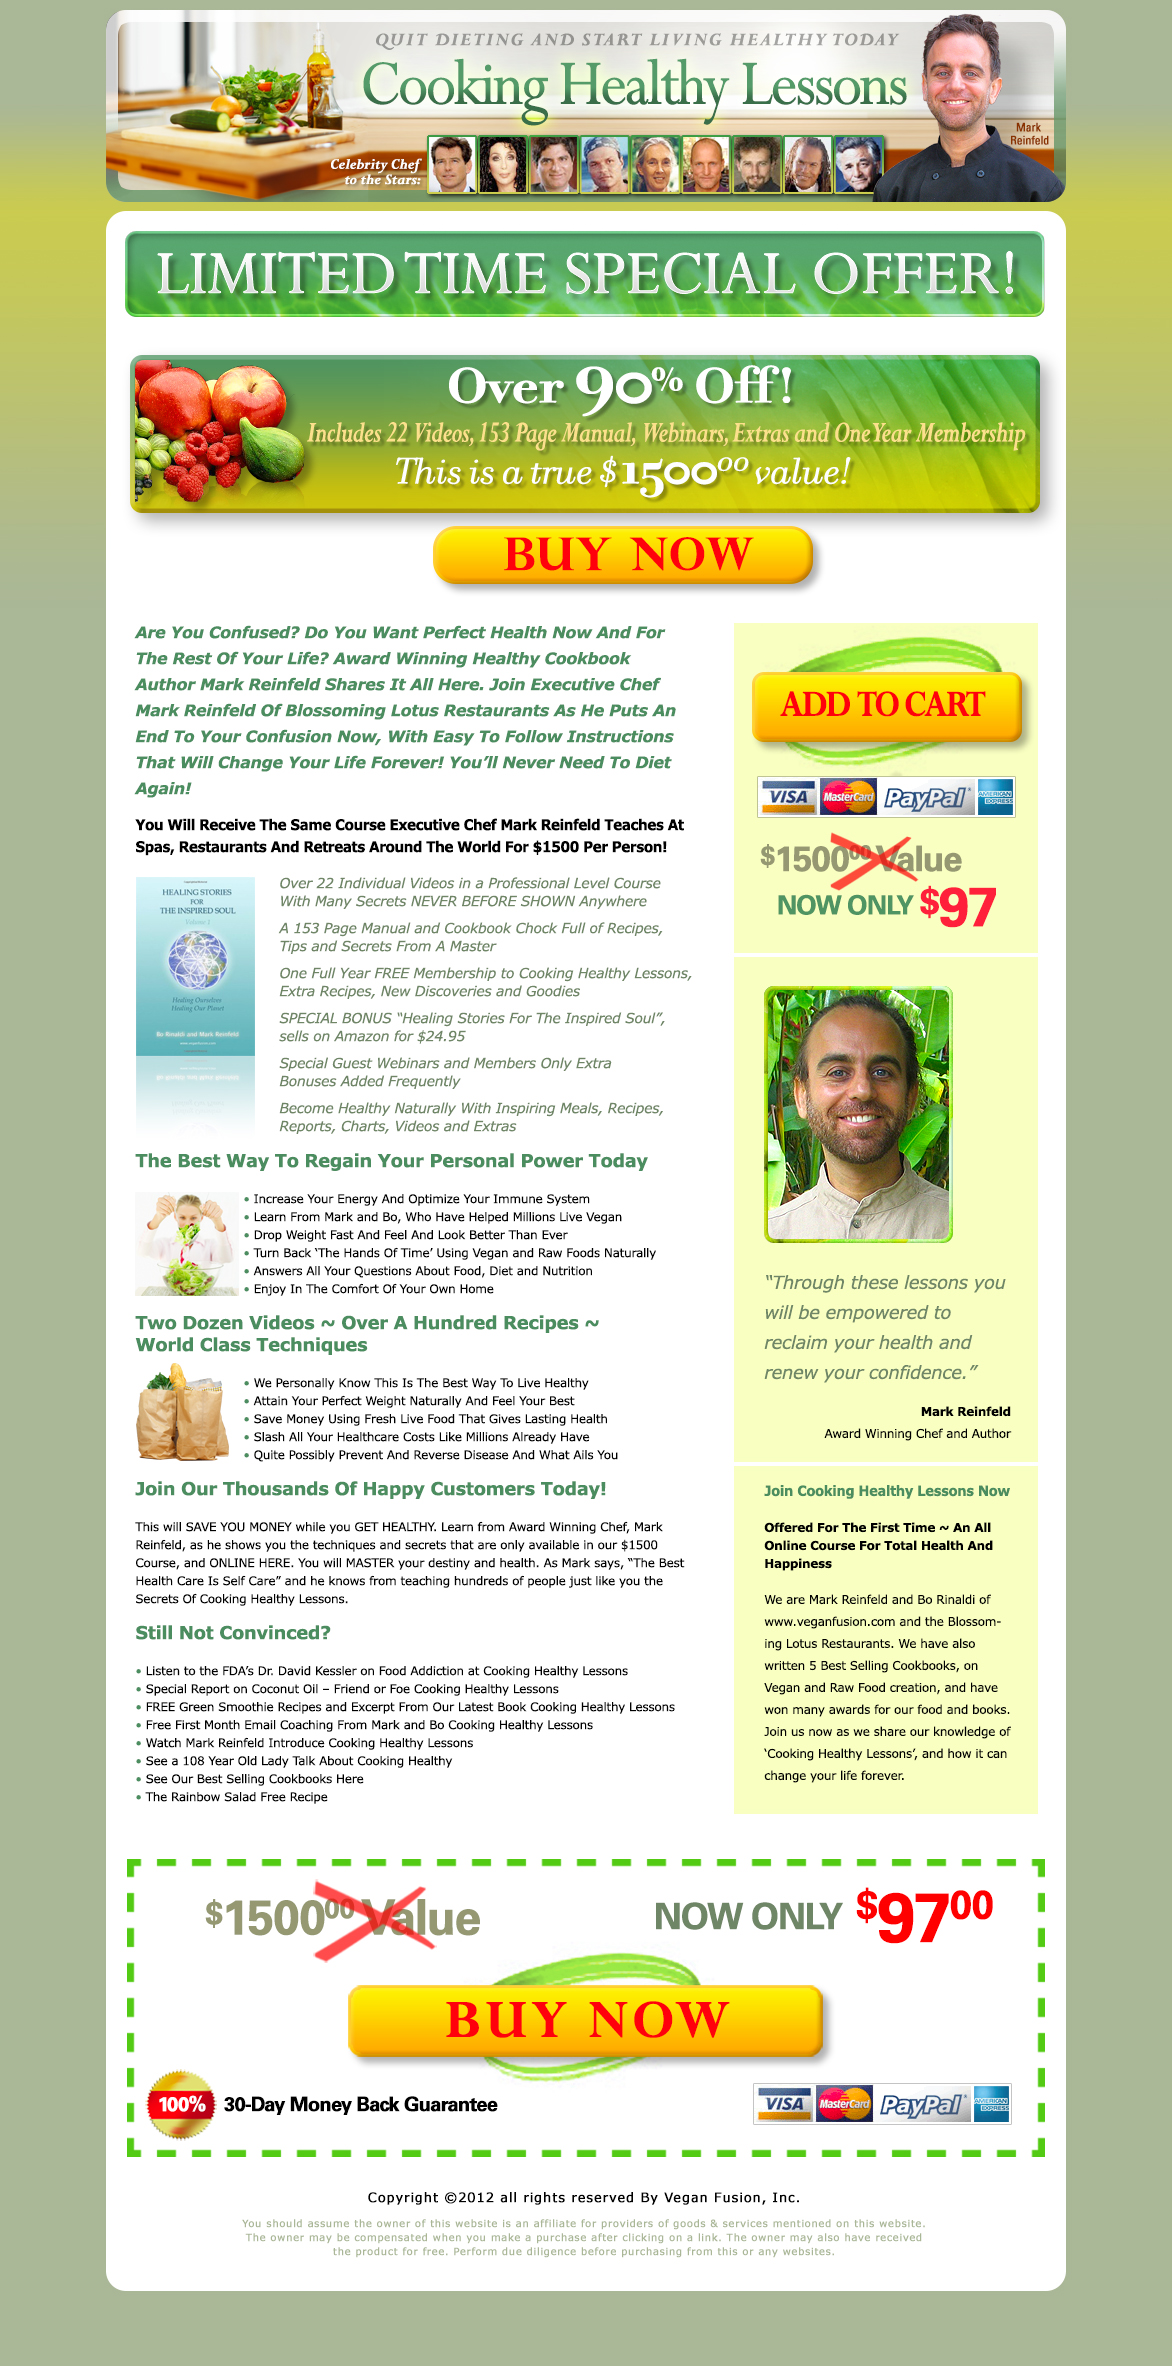 Cooking Health Lessons Squeeze Page